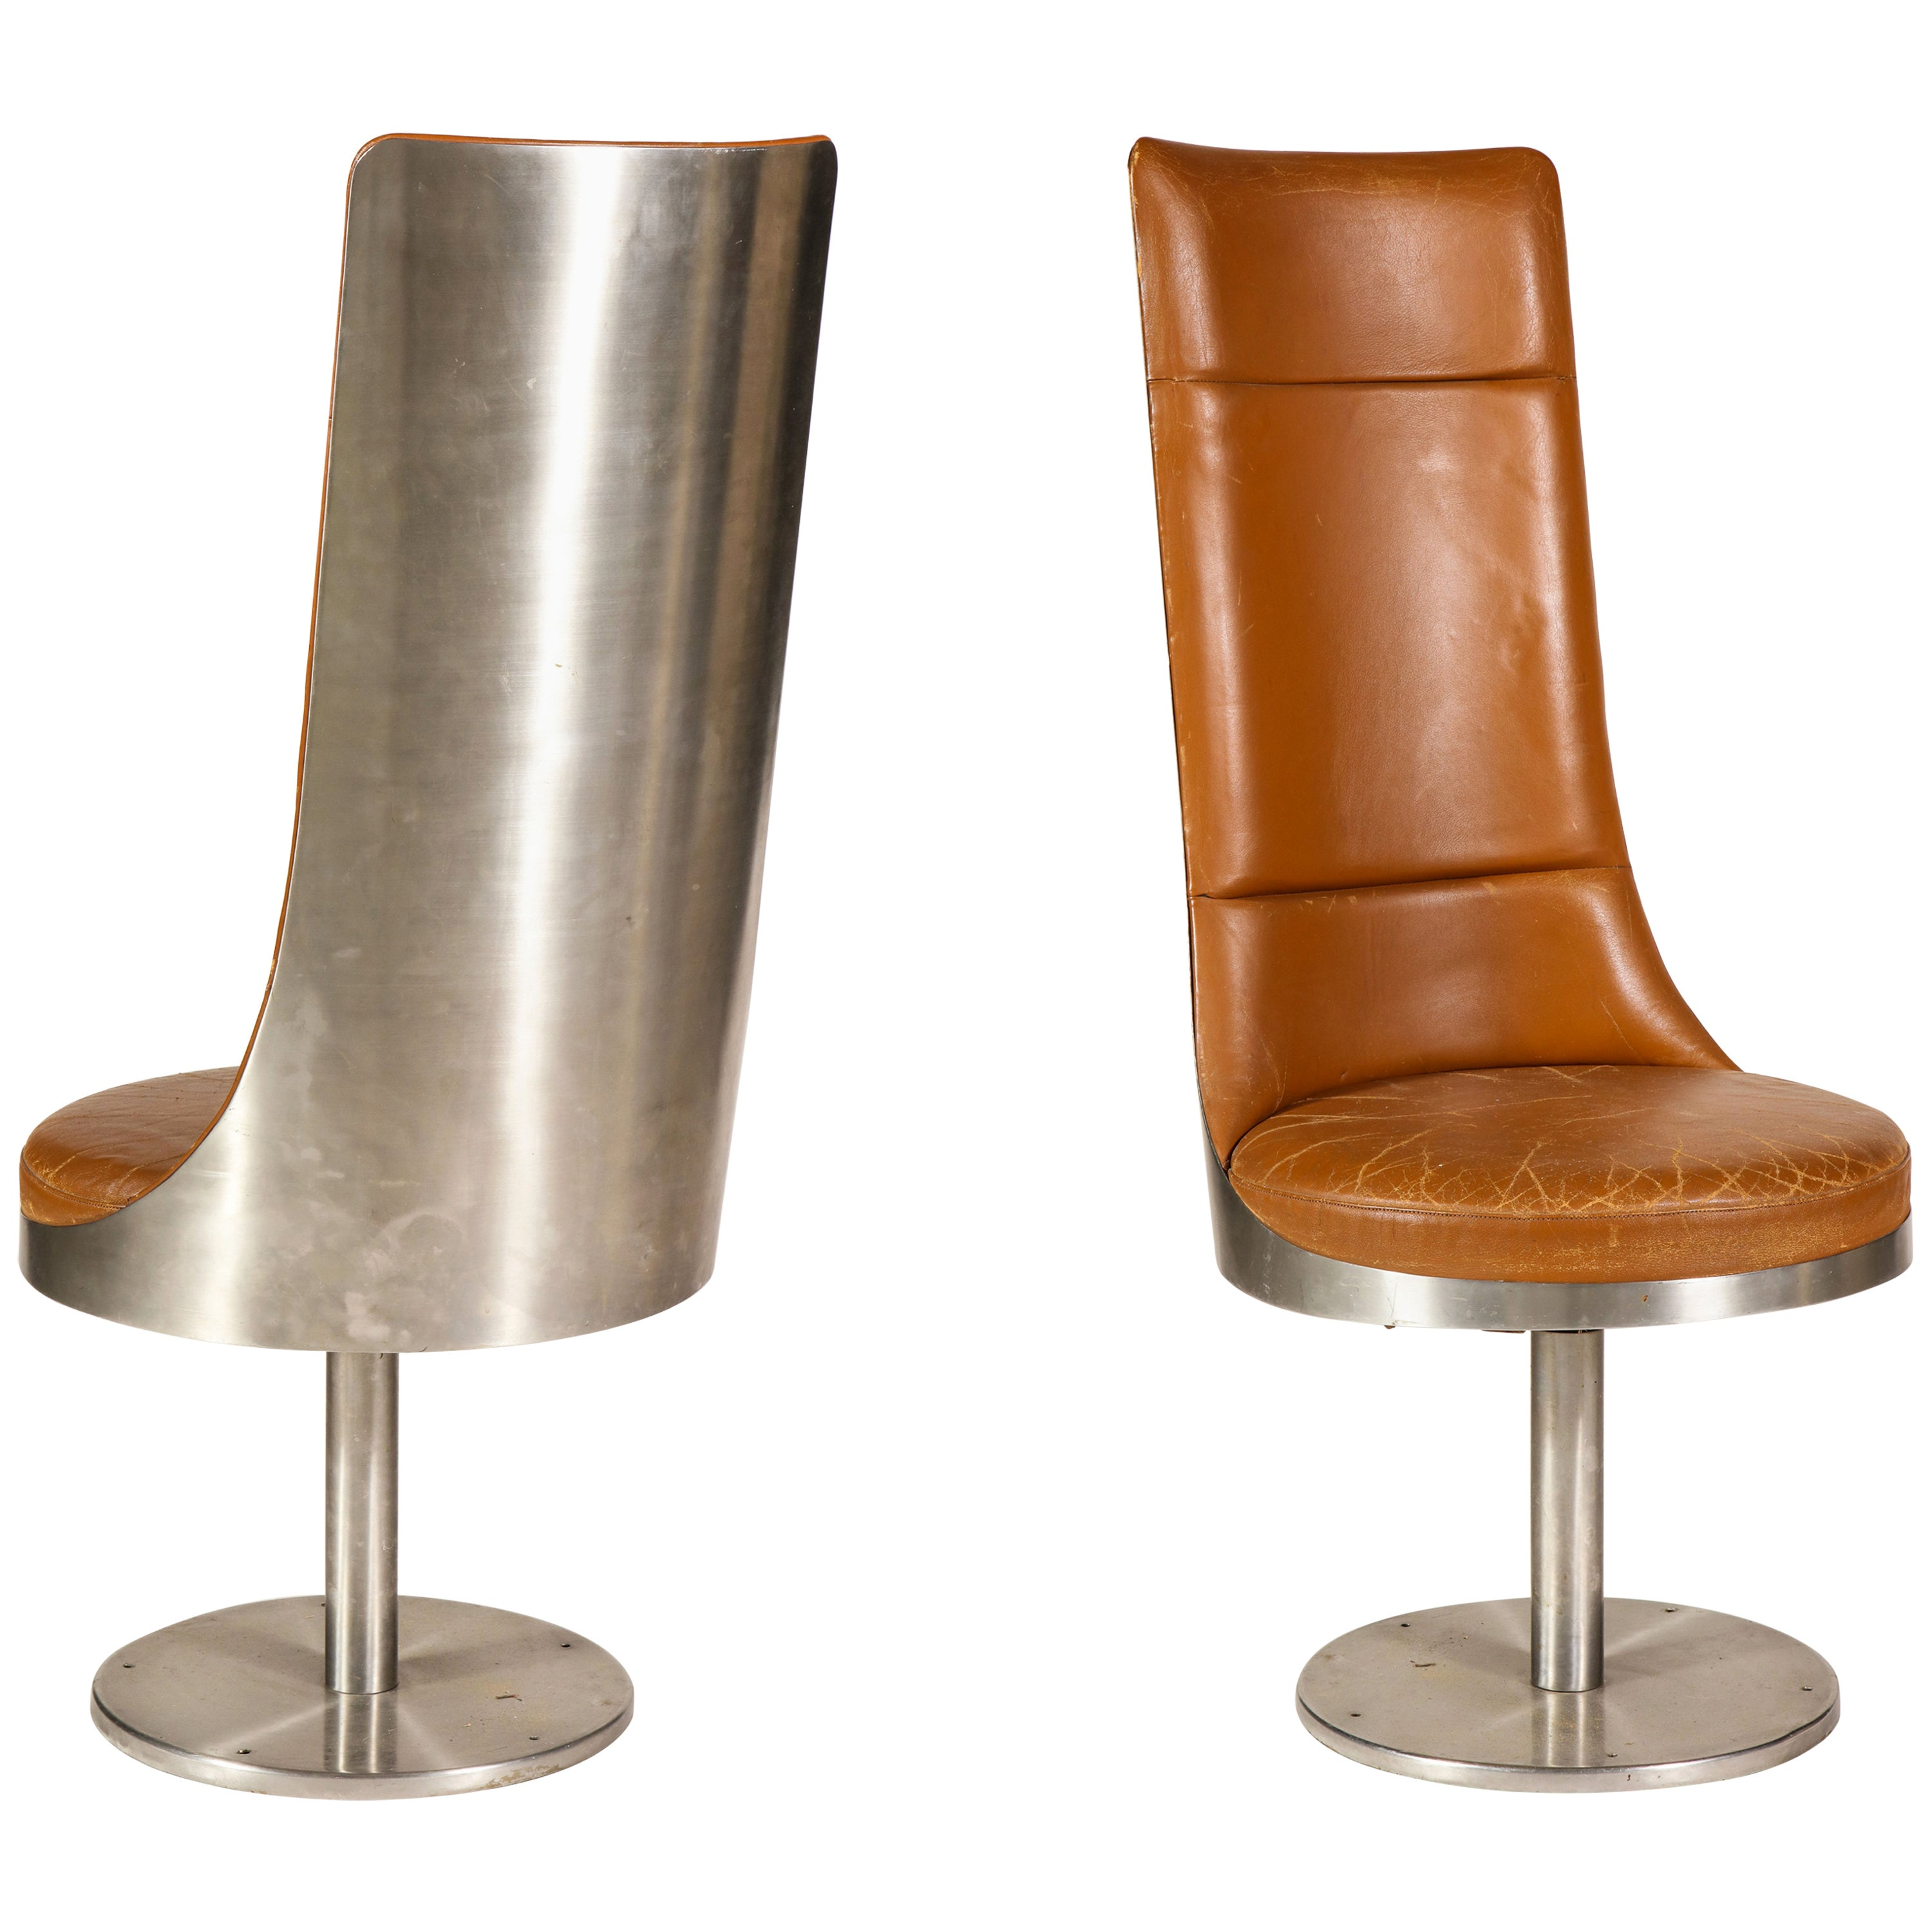 Maria Pergay for Architonic Pair of Steel Brown Leather Chairs, France